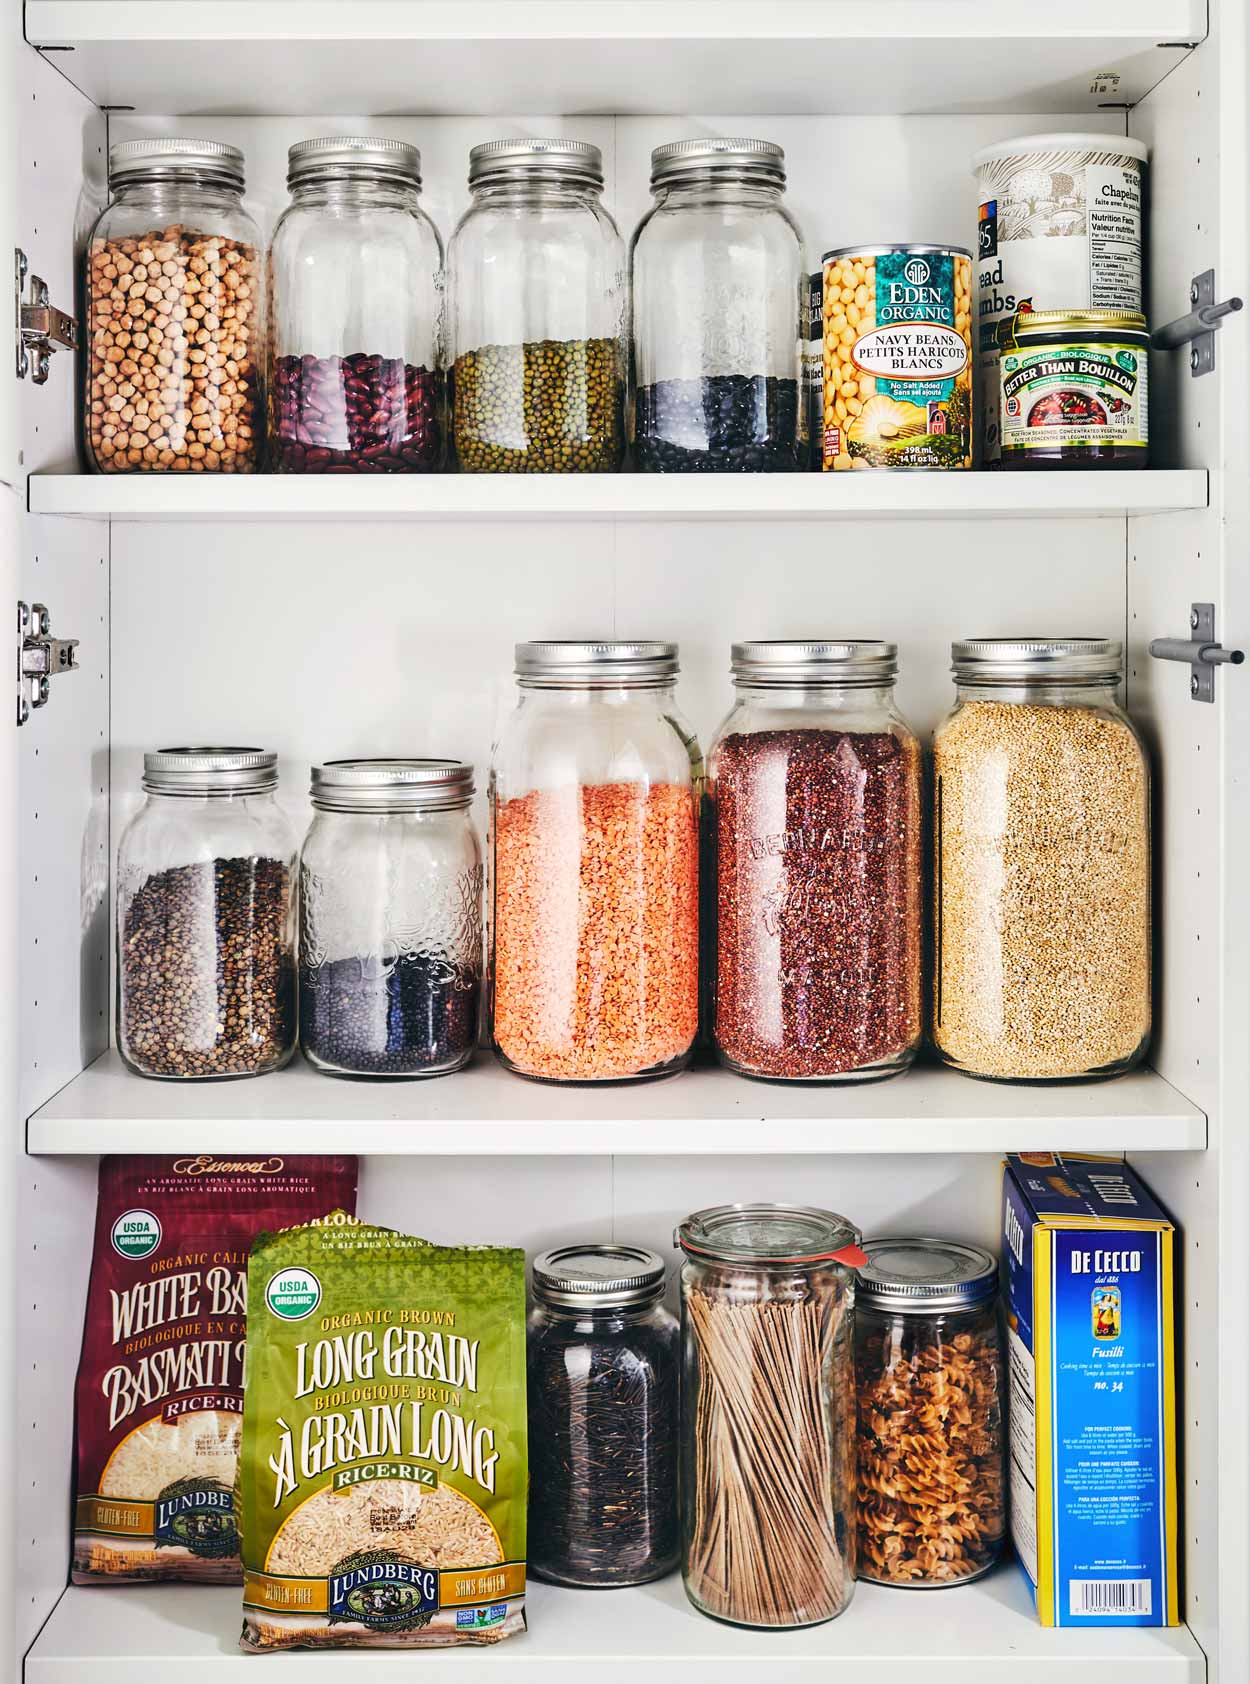 Inside Evergreen Kitchen's Pantry | Grains, Legumes, Beans, Rice, Noodles, Pasta | A Resource Guide